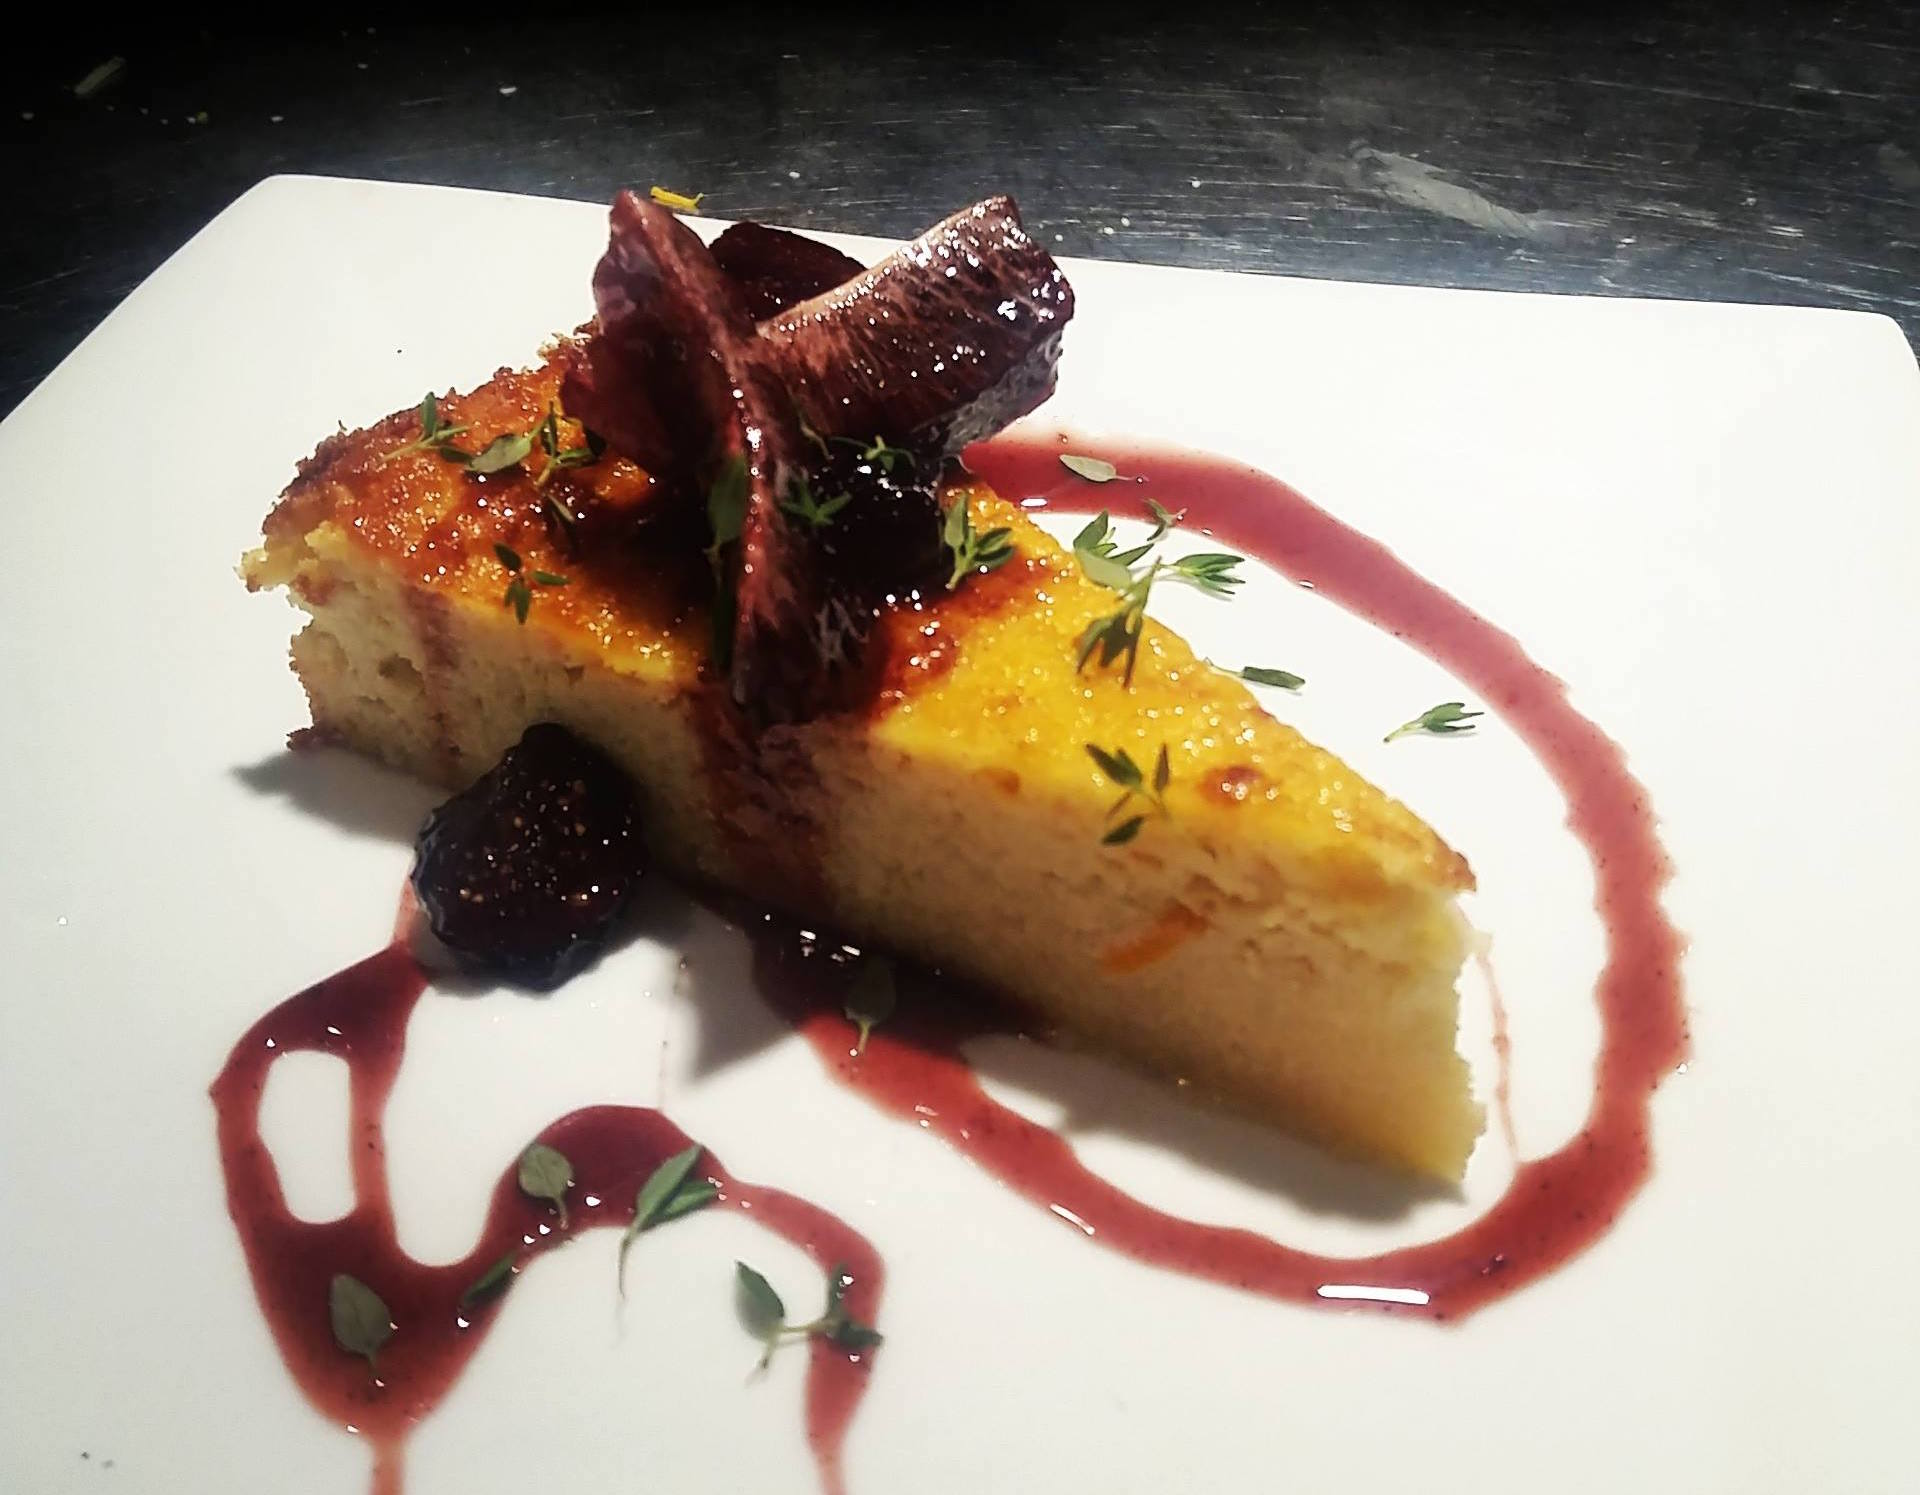 blood orange ricotta cheesecake with red wine glazed figs.jpg